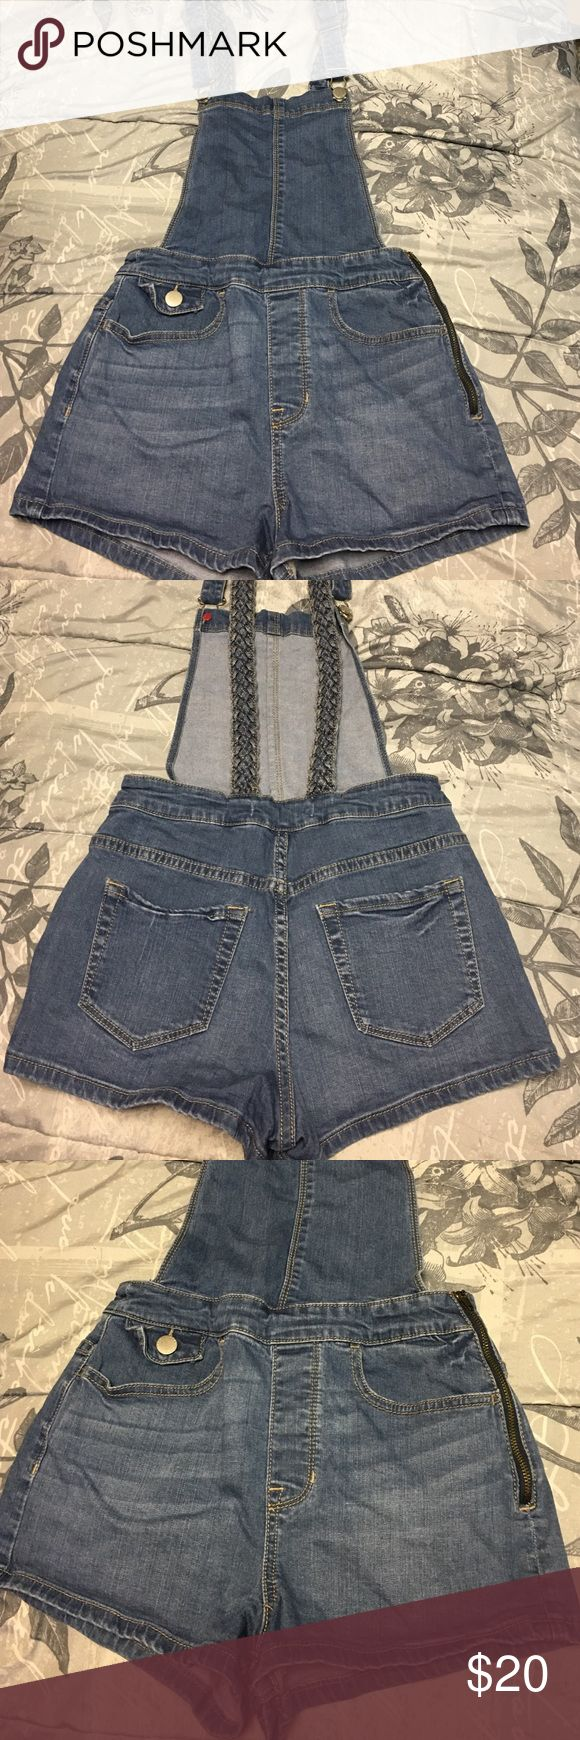 Super cute jean overalls Blue jean overalls from PacSun! These are super cute and I absolutely love them but unfortunately they are too small for me! Only worn twice💙 Accepting offers 💙 Smoke free home! Comes with a free gift💕💕 PacSun Jeans Overalls